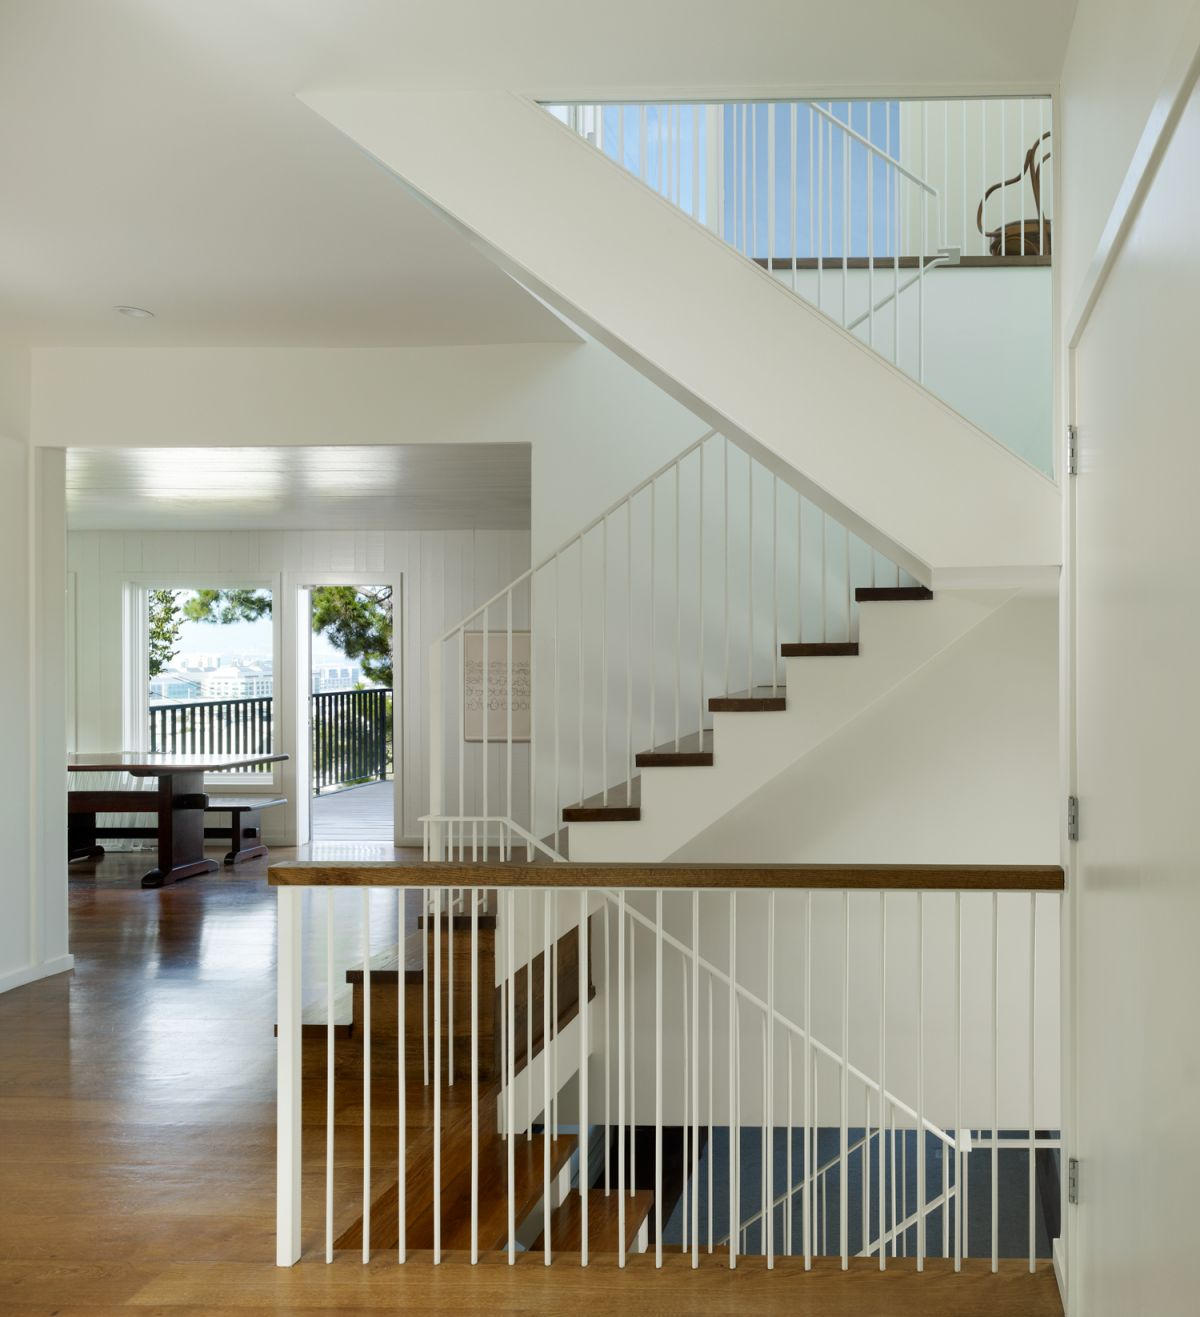 Stairs Design Inside House